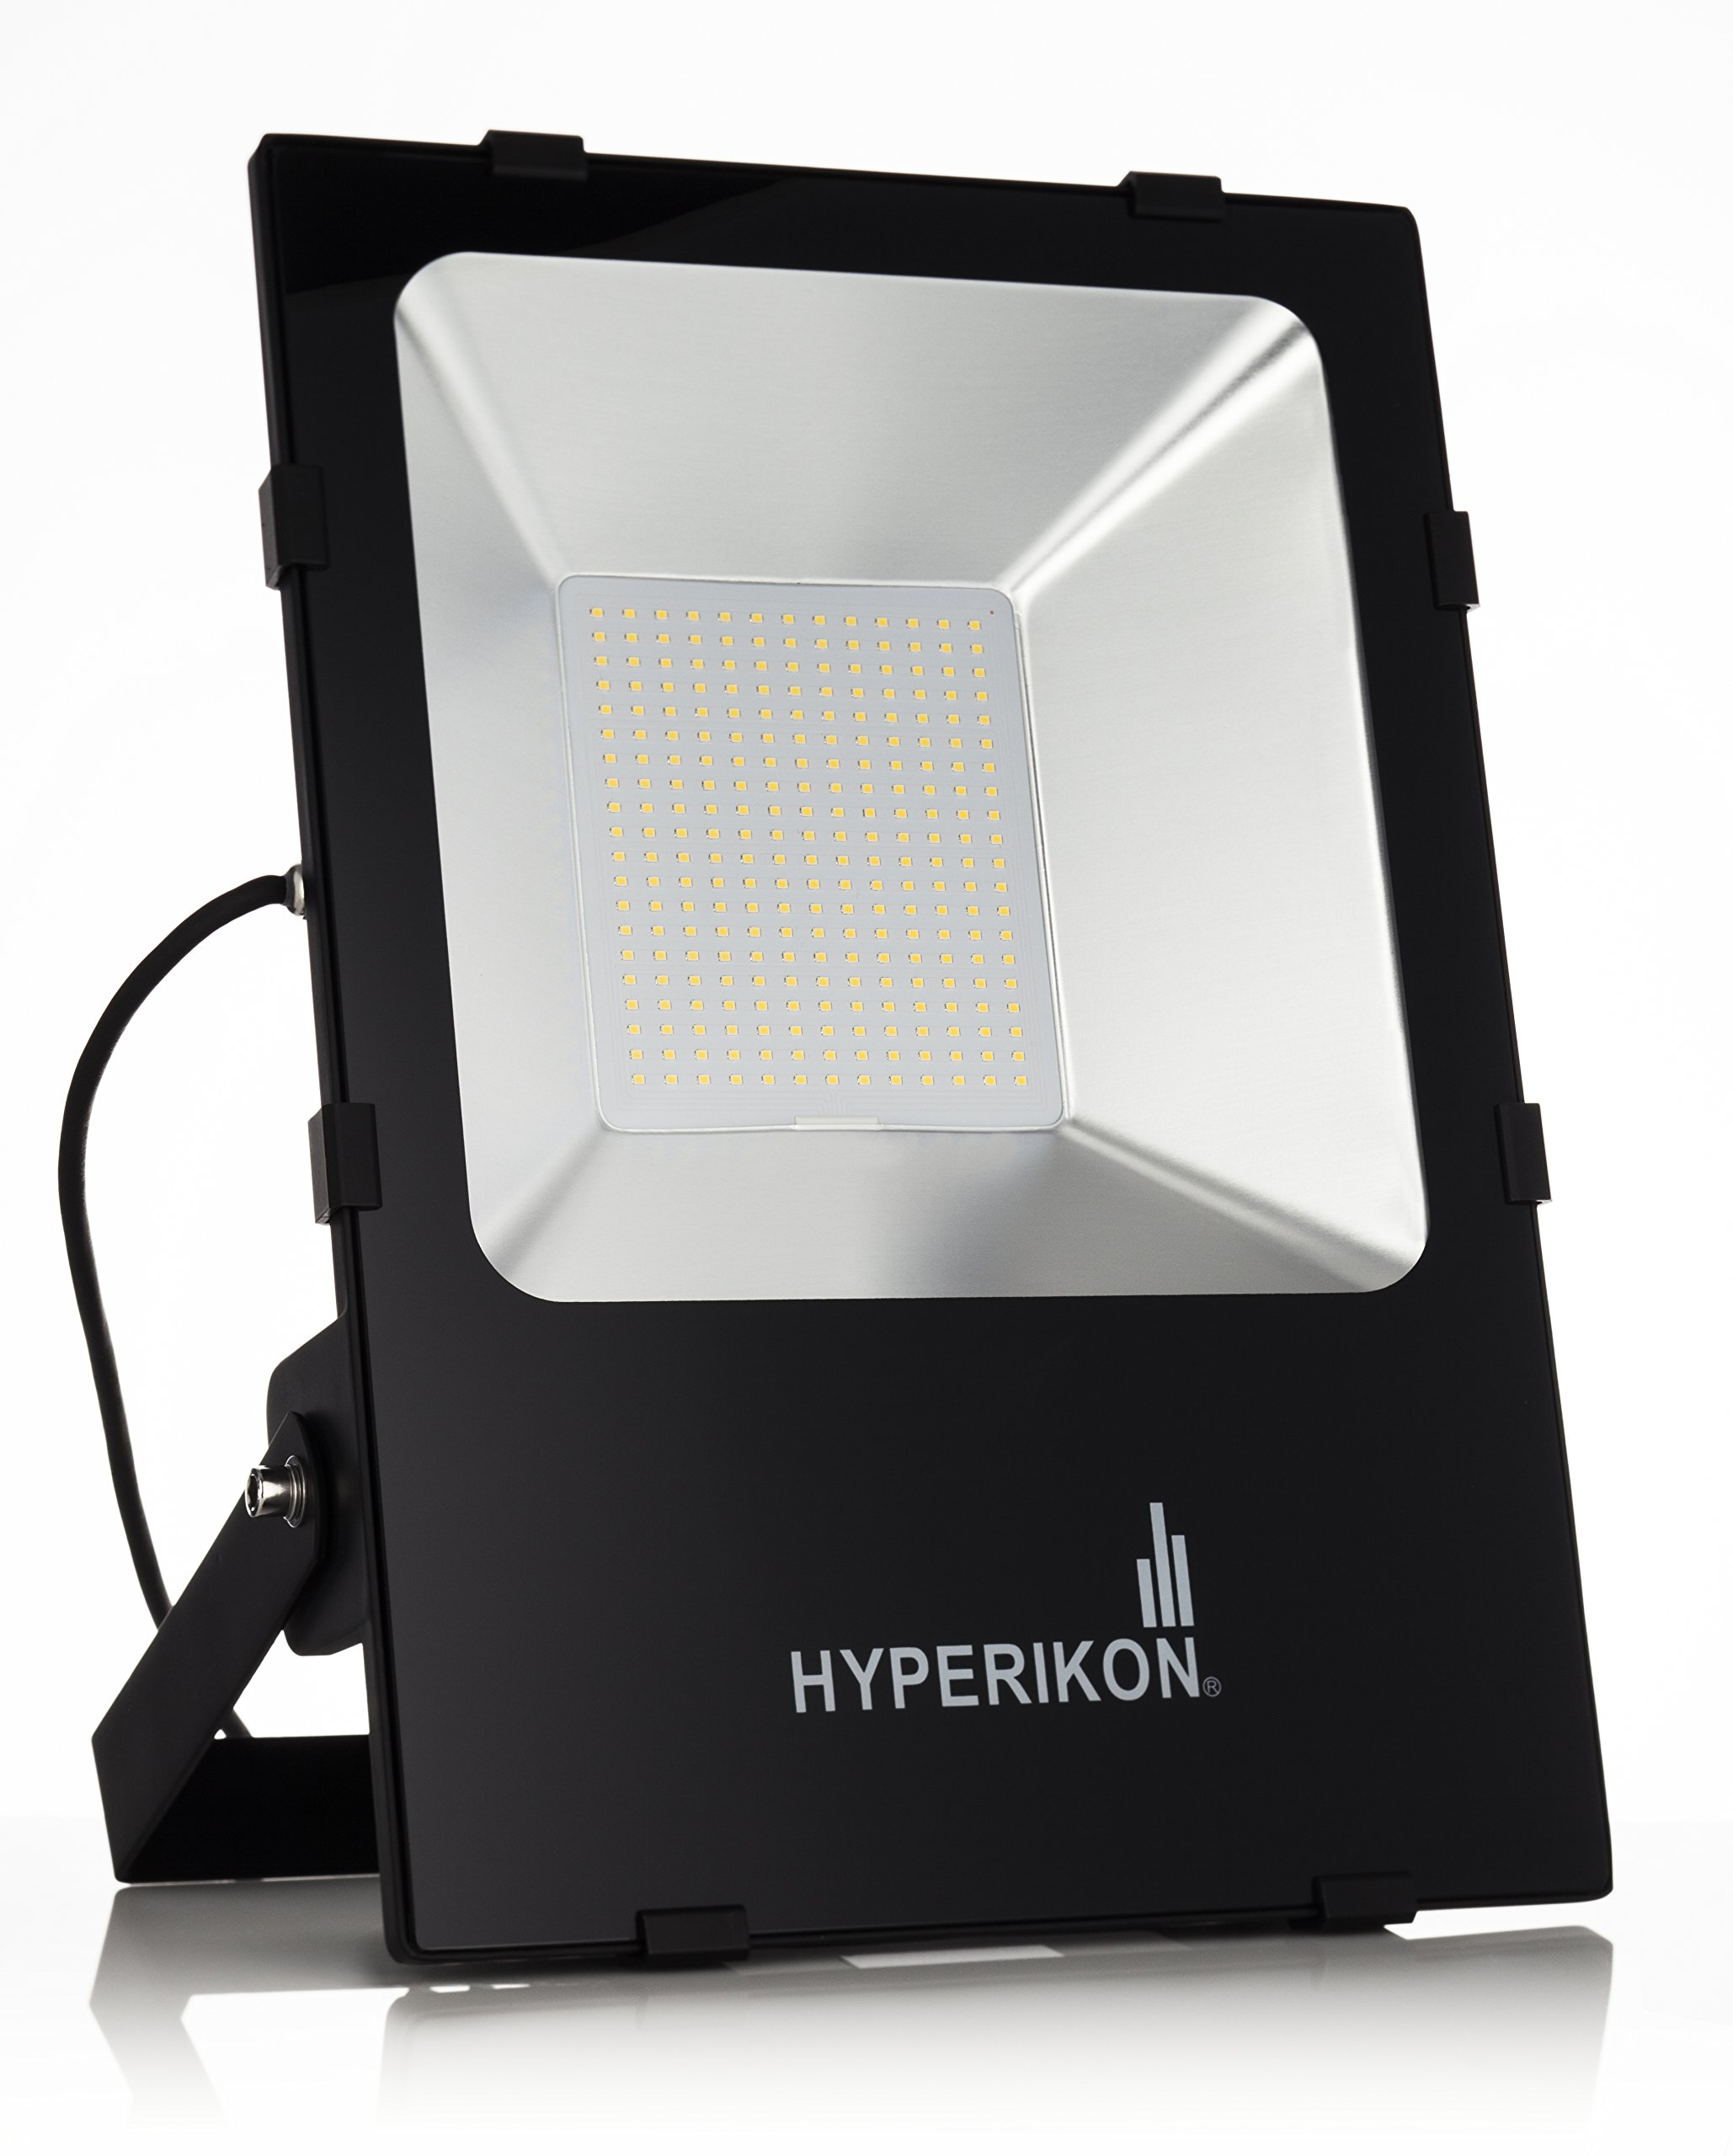 Hyperikon 200W LED Flood Light, (1000 Watt Equivalent), 22000 lumen, 5000K Super Bright LED Outdoor, IP65